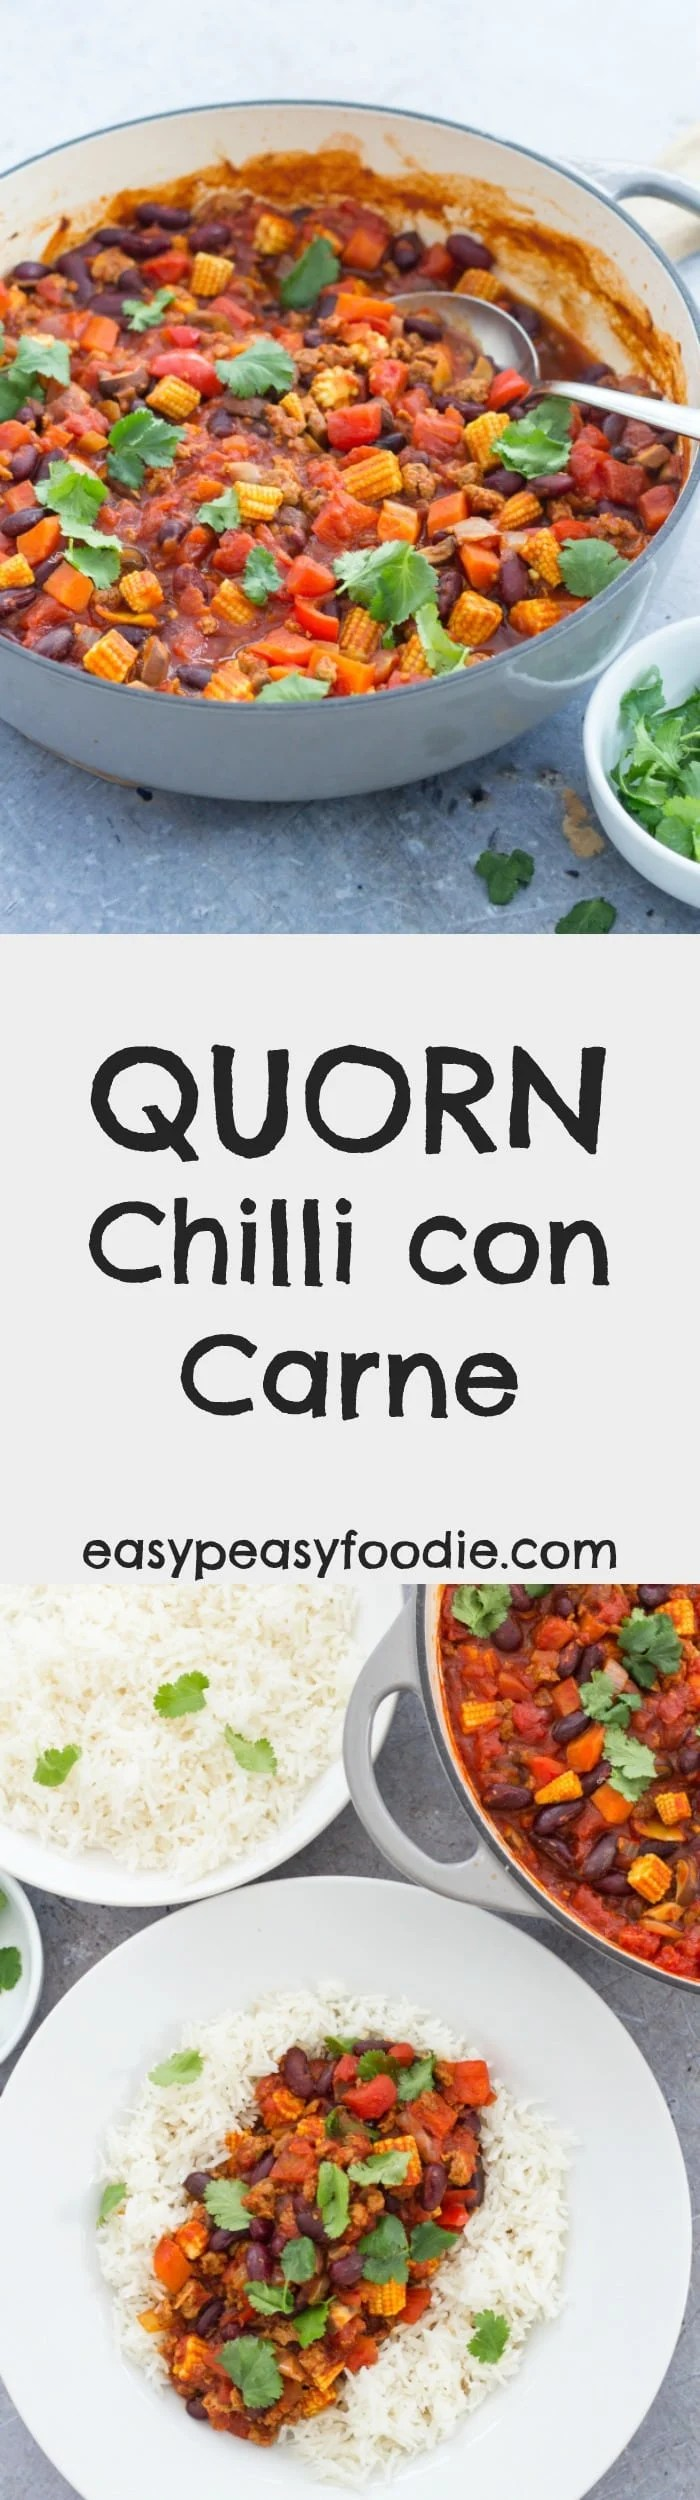 Easy and nutritious, this Quorn Chilli Con Carne is ready in just 20 minutes, making it perfect for busy weeknights! I've kept the chilli level quite mild so it's great for kids (and chilli wimps)…but feel free to add more if you like your chilli con carne HOT! #quorn #chilli #chili #chilliconcarne #vegetarian #veggiechilli #kidneybeans #babycorn #mushrooms #carrots #tomatoes #rice #easydinners #under30minutes #easyrecipes #midweekmeals #easypeasyfoodie